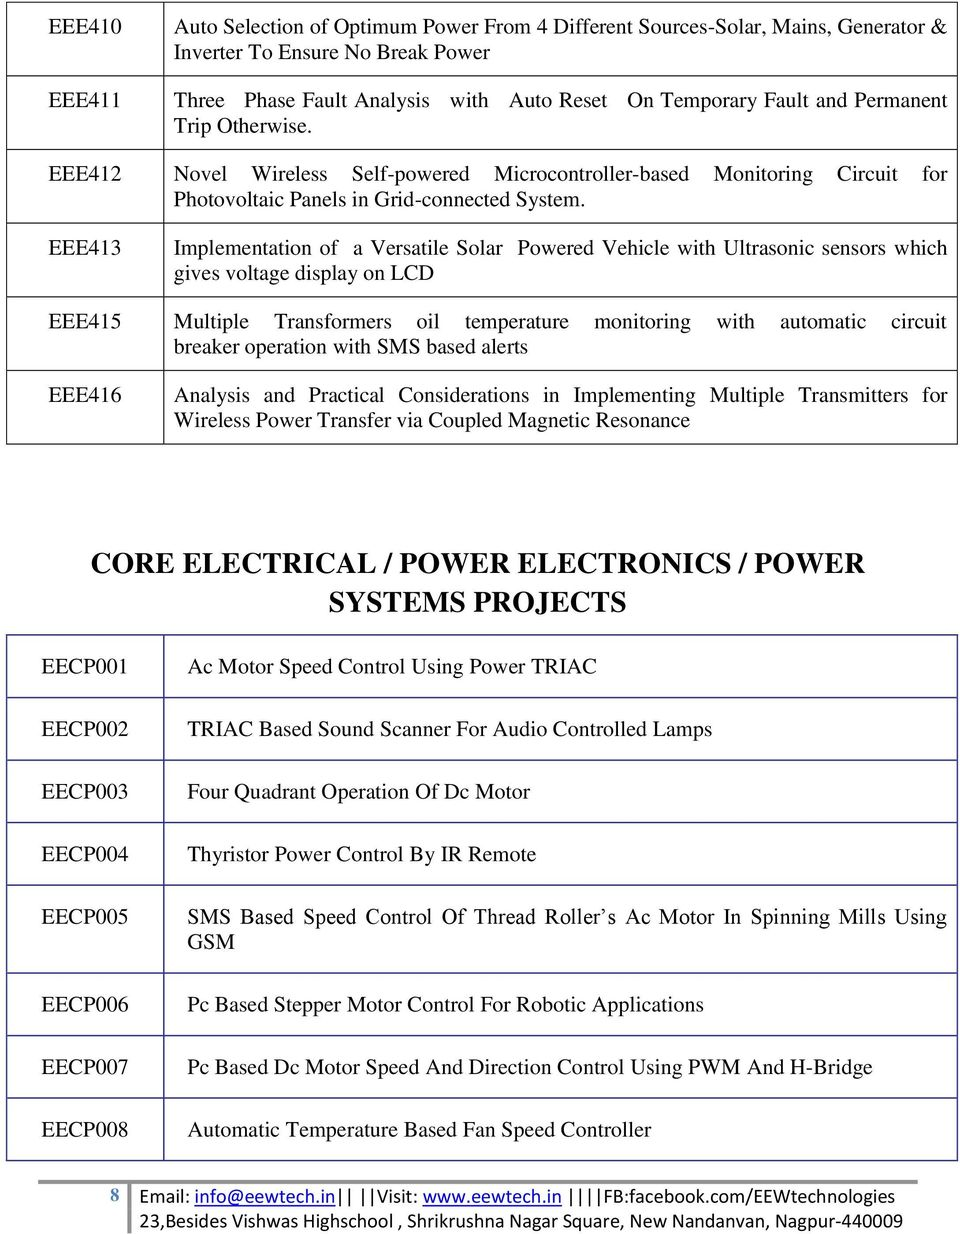 Electrical Project List Latest Projects Pdf Mini Over Under Voltage Protection Of Appliances Eee413 Implementation A Versatile Solar Powered Vehicle With Ultrasonic Sensors Which Gives Display On